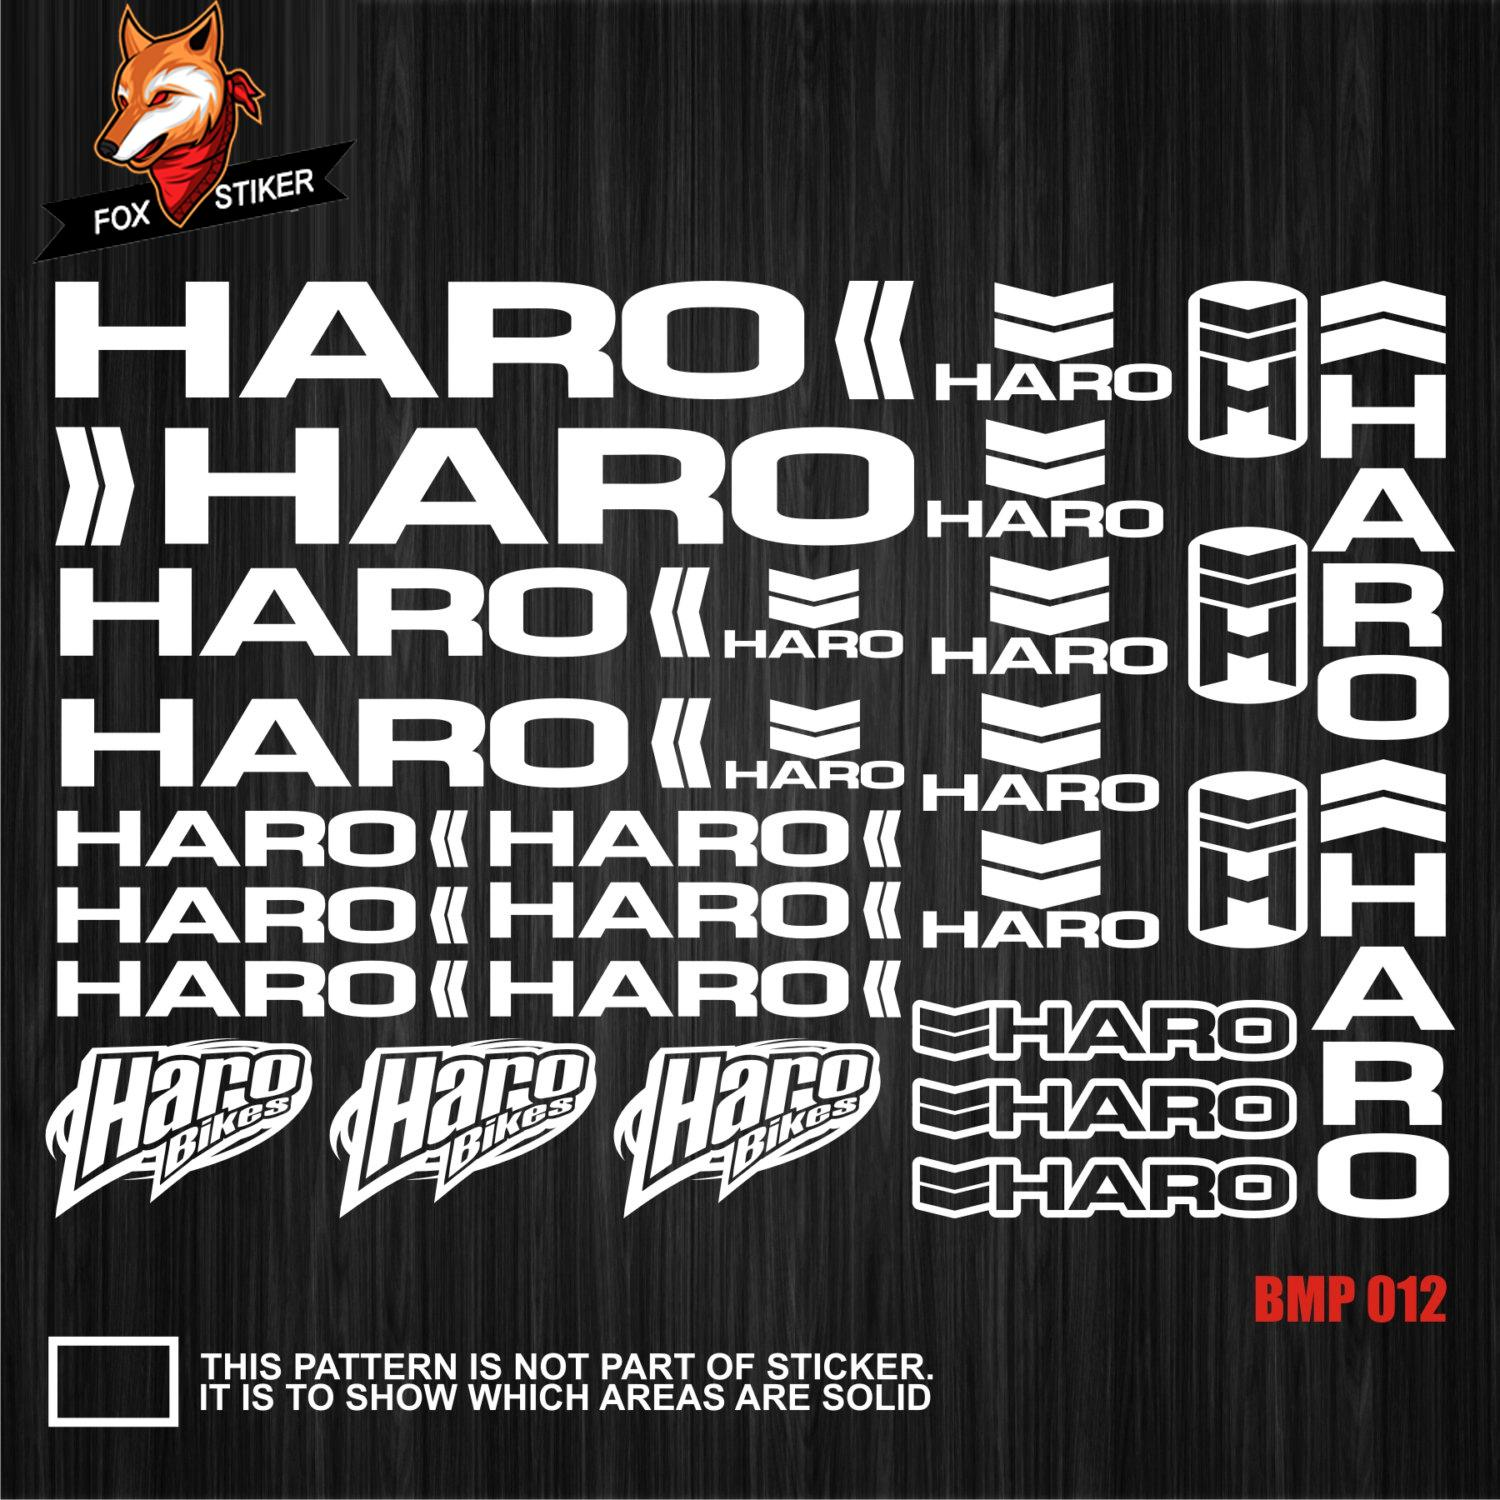 2019 bicycle frame stickers road bike mountain track bike fat bike decal reflective stickers for haro stickers from catazer bicycle 19 94 dhgate com